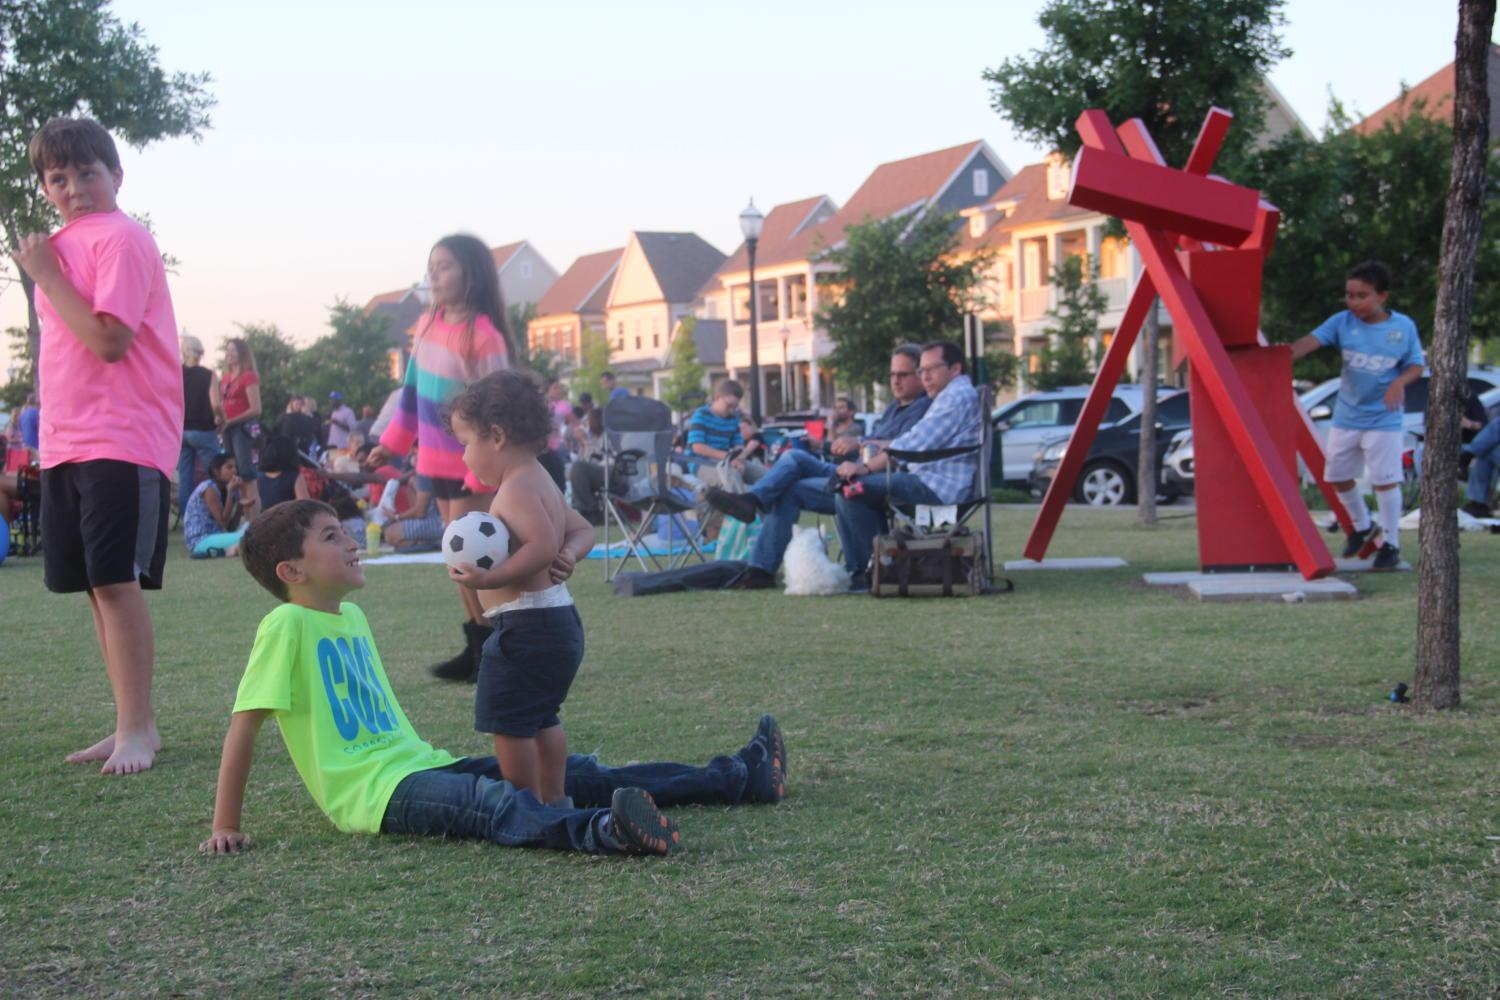 Two+kids+play+soccer+with+each+other+during+the+Coppell+Concert+on+the+Lawn+event+at+the+Square+of+Old+Town+Coppell+last+night.+Children+from+all+over+Coppell+played+games+and+danced+to+the+music.